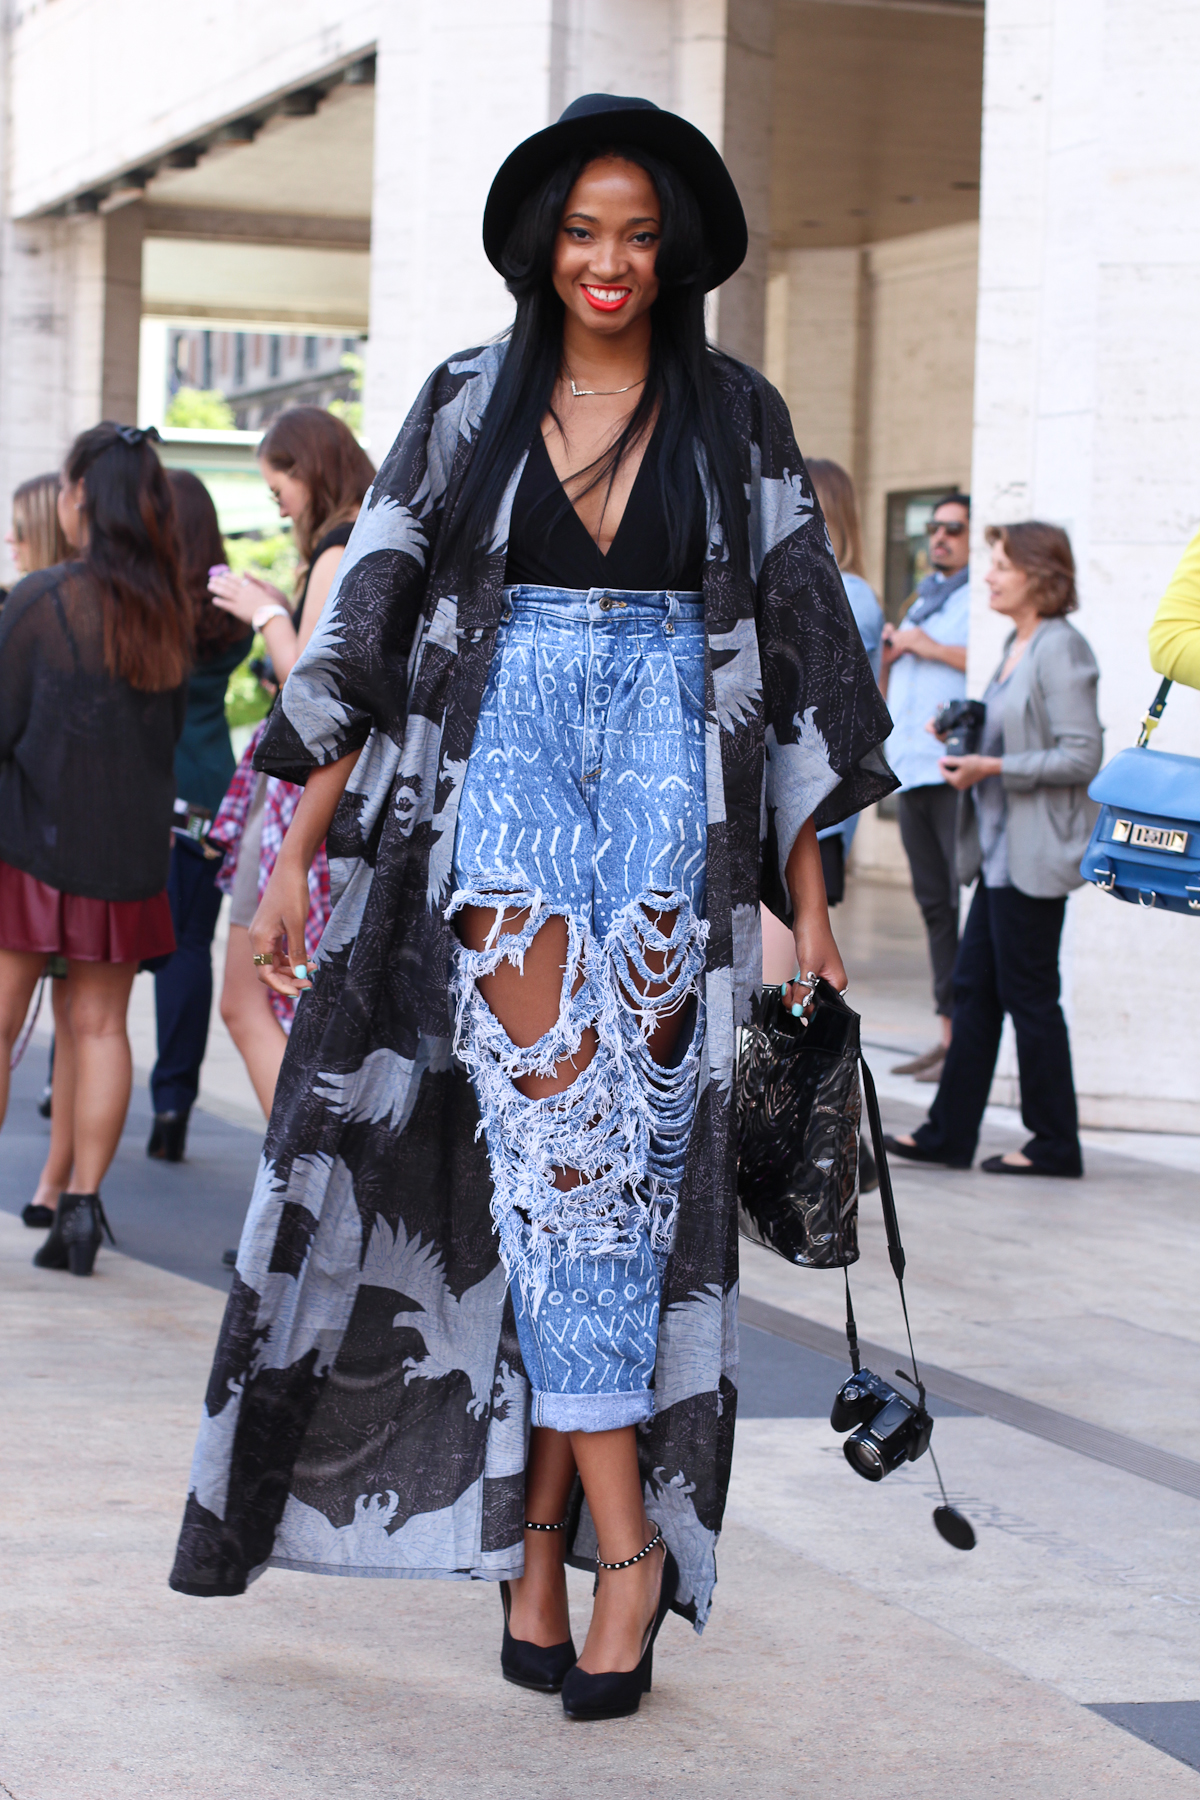 Style blogger Candace Marie in her ripped denim / Photo Source: ryanbyryanchua.com